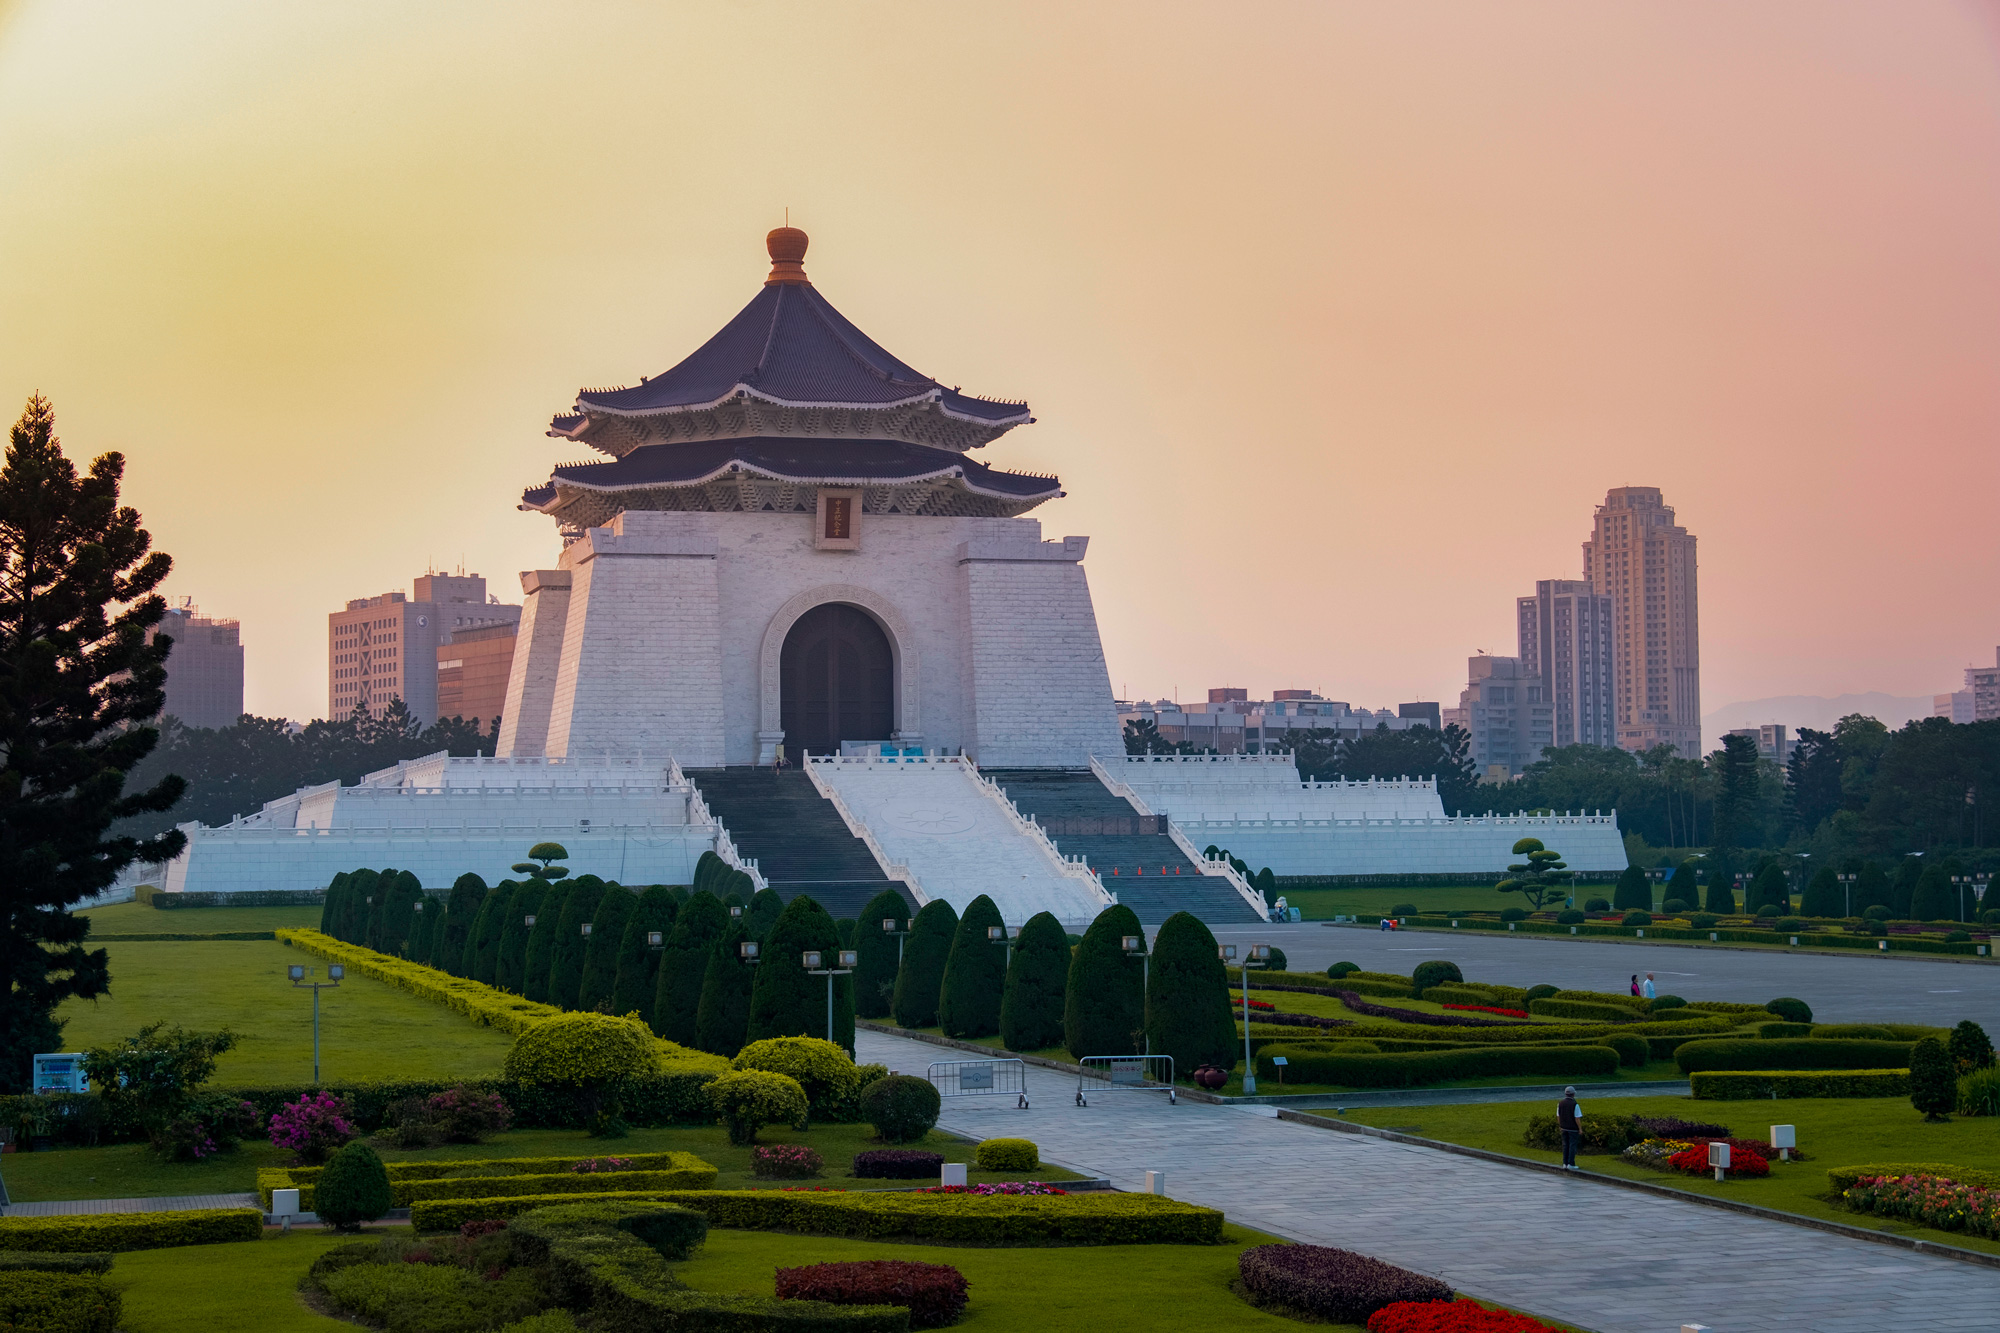 Sunset at the National Chiang Kai-shek Memorial Hall, Taipei, Taiwan